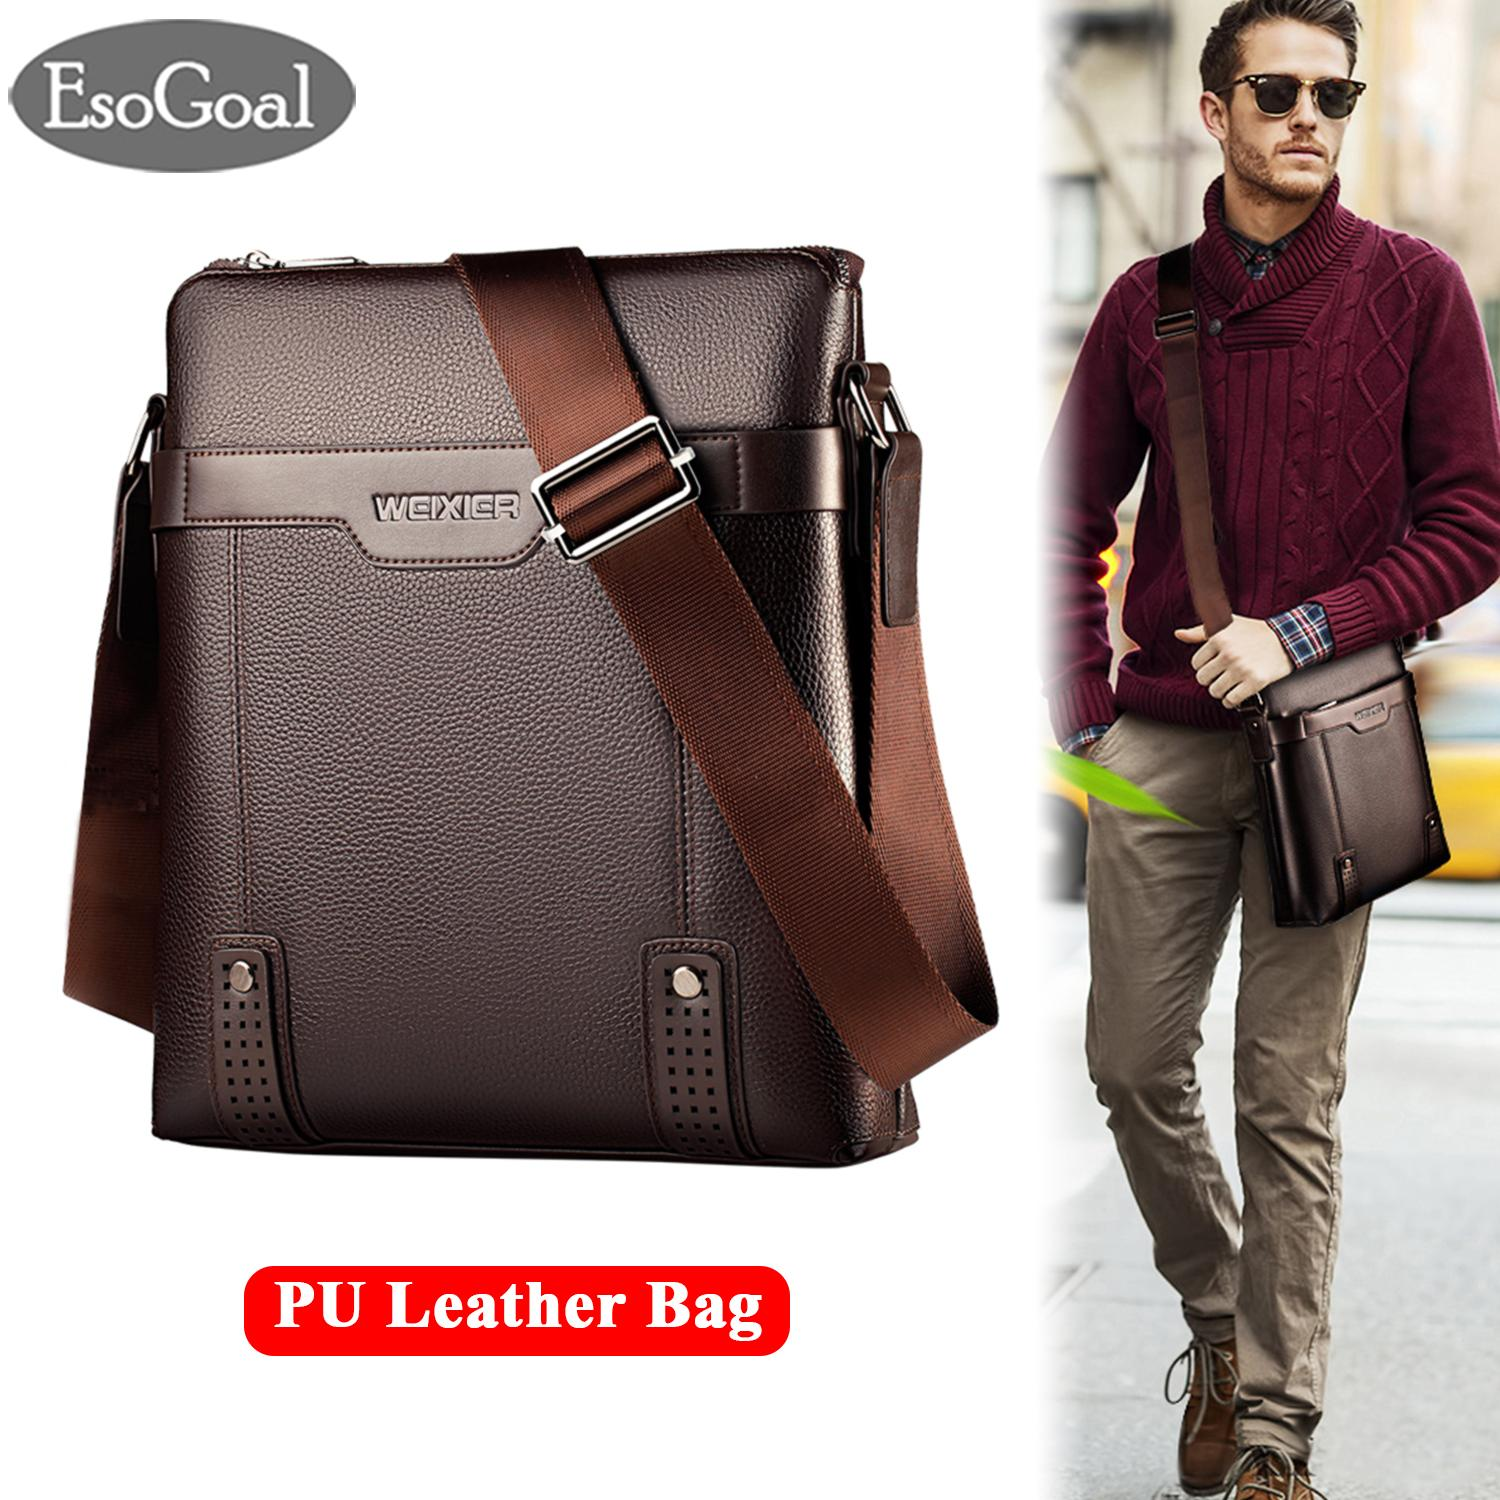 Bags for Men for sale - Mens Fashion Bags online brands 239f446d0893b